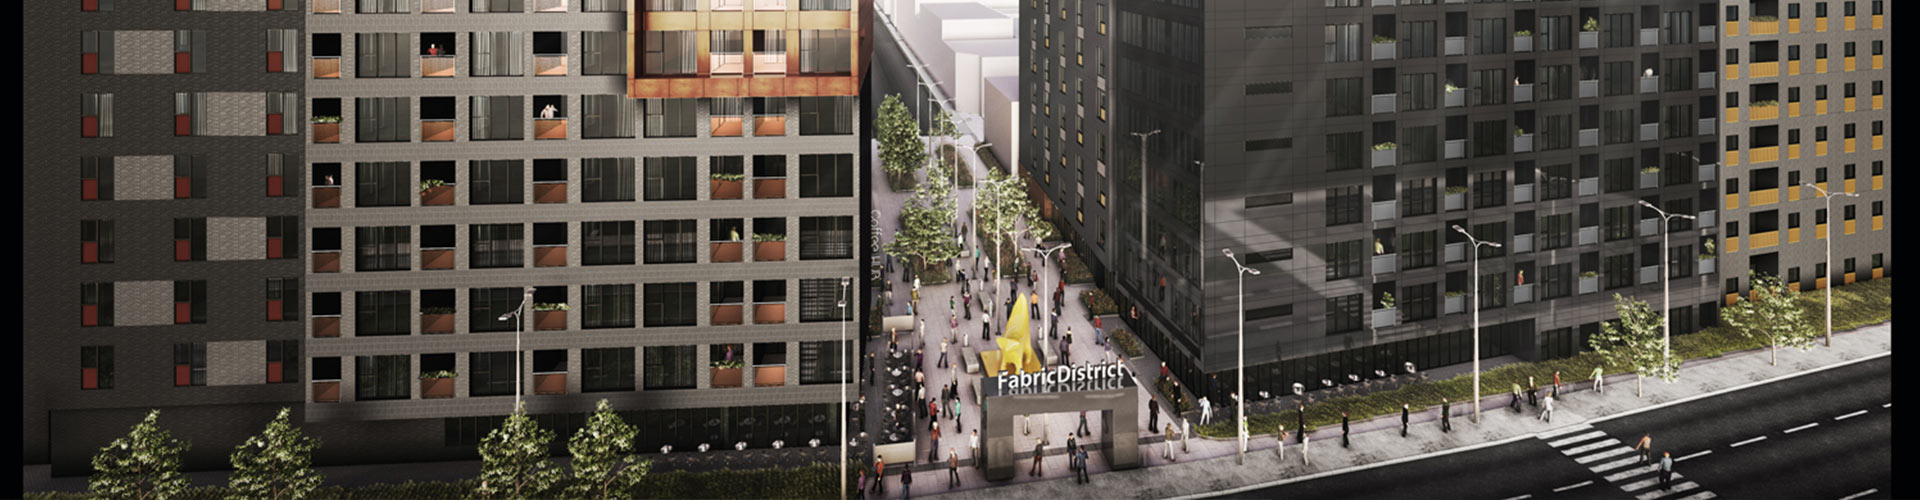 Fabric Village, Early Stage Development in Liverpool Banner